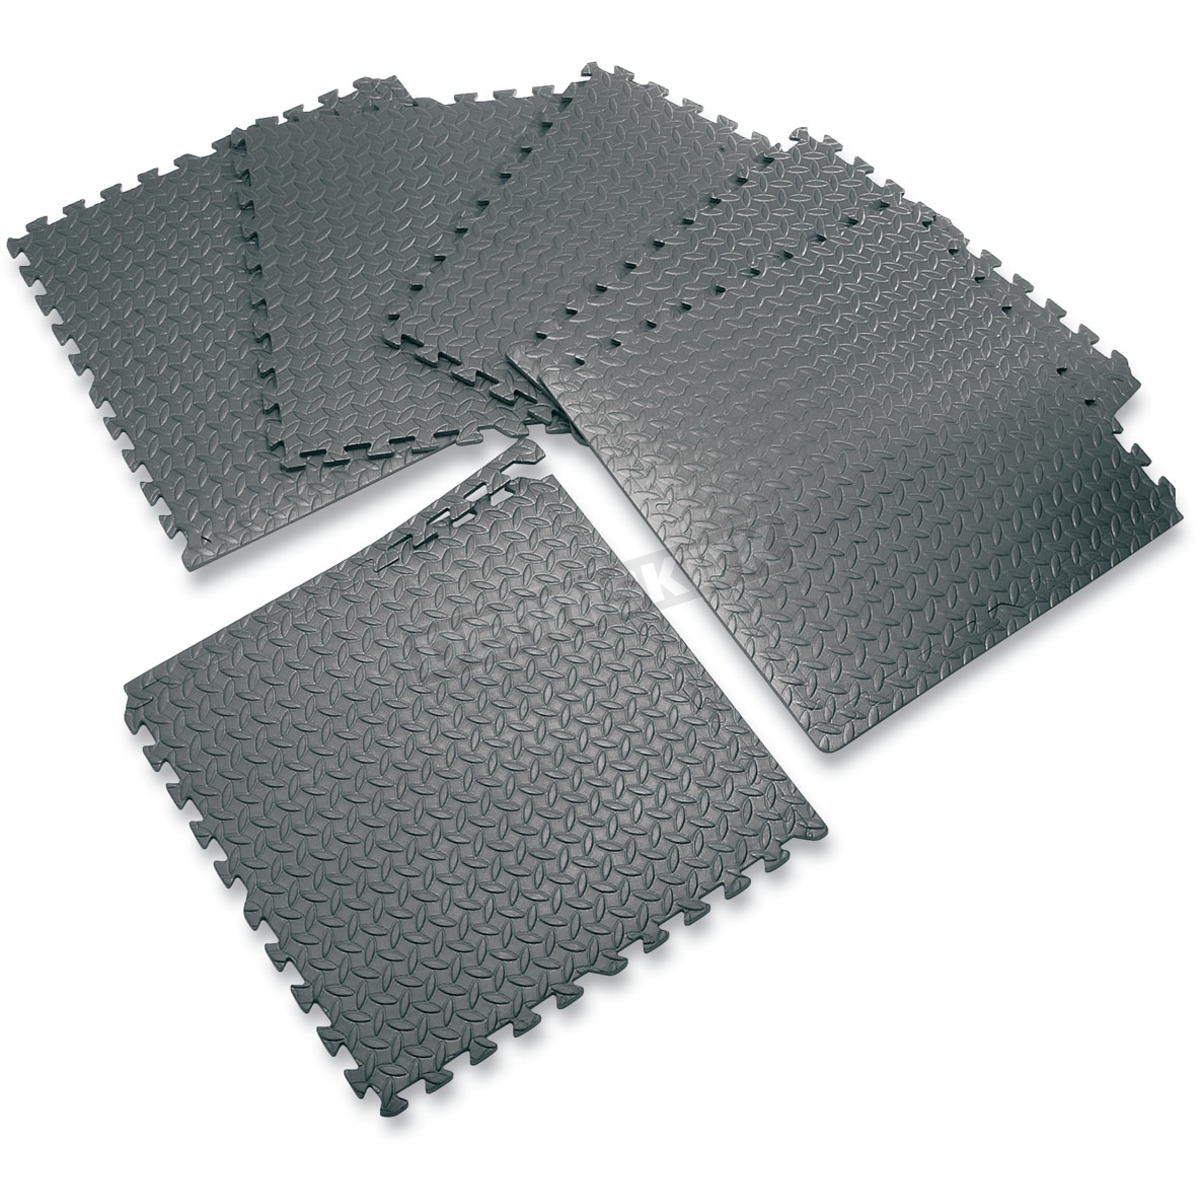 Pro Armor Anti-Fatigue Floor Mats - W88989 Harley Motorcycle Goldwing ...